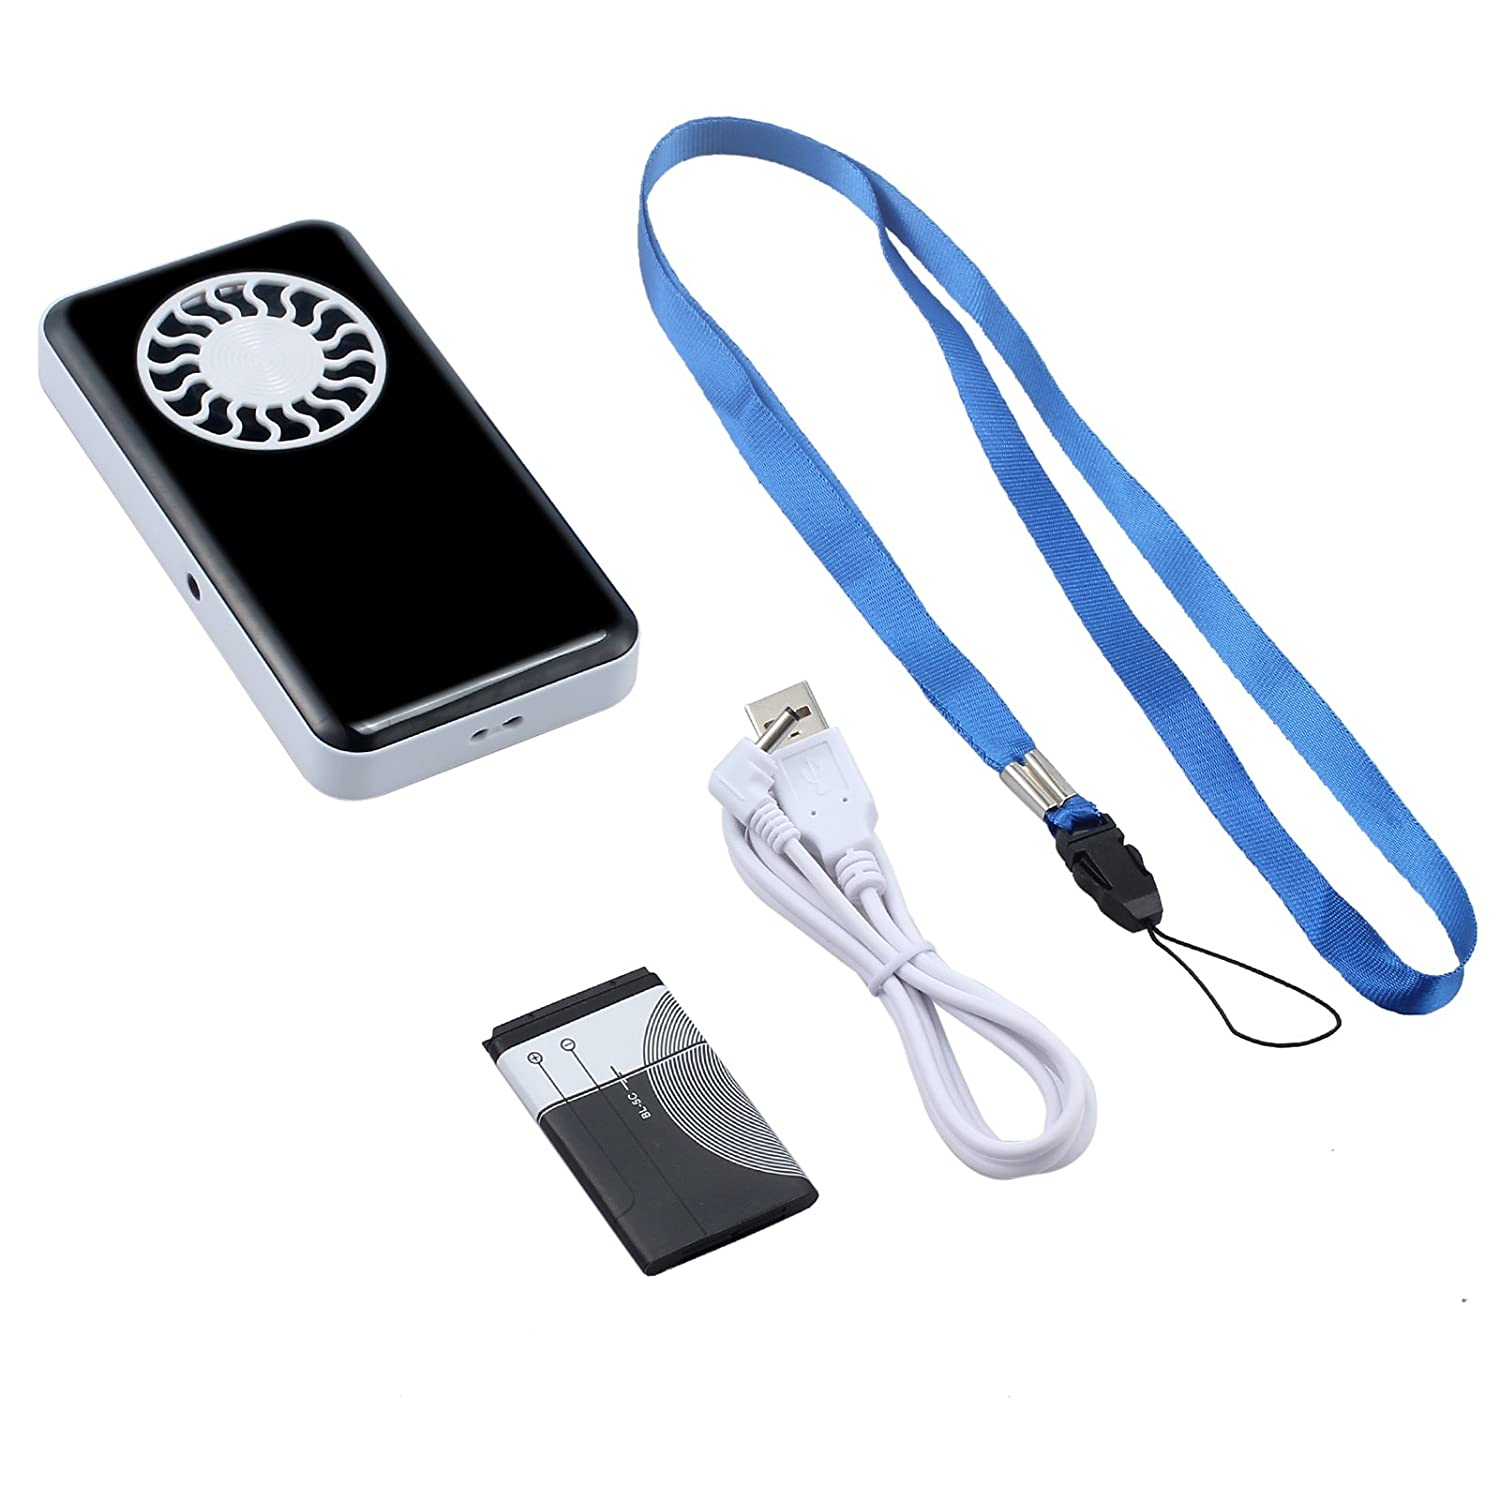 Rechargeable Portable Lithium Battery Operated Personal Summer Pocket Cooling Fan White